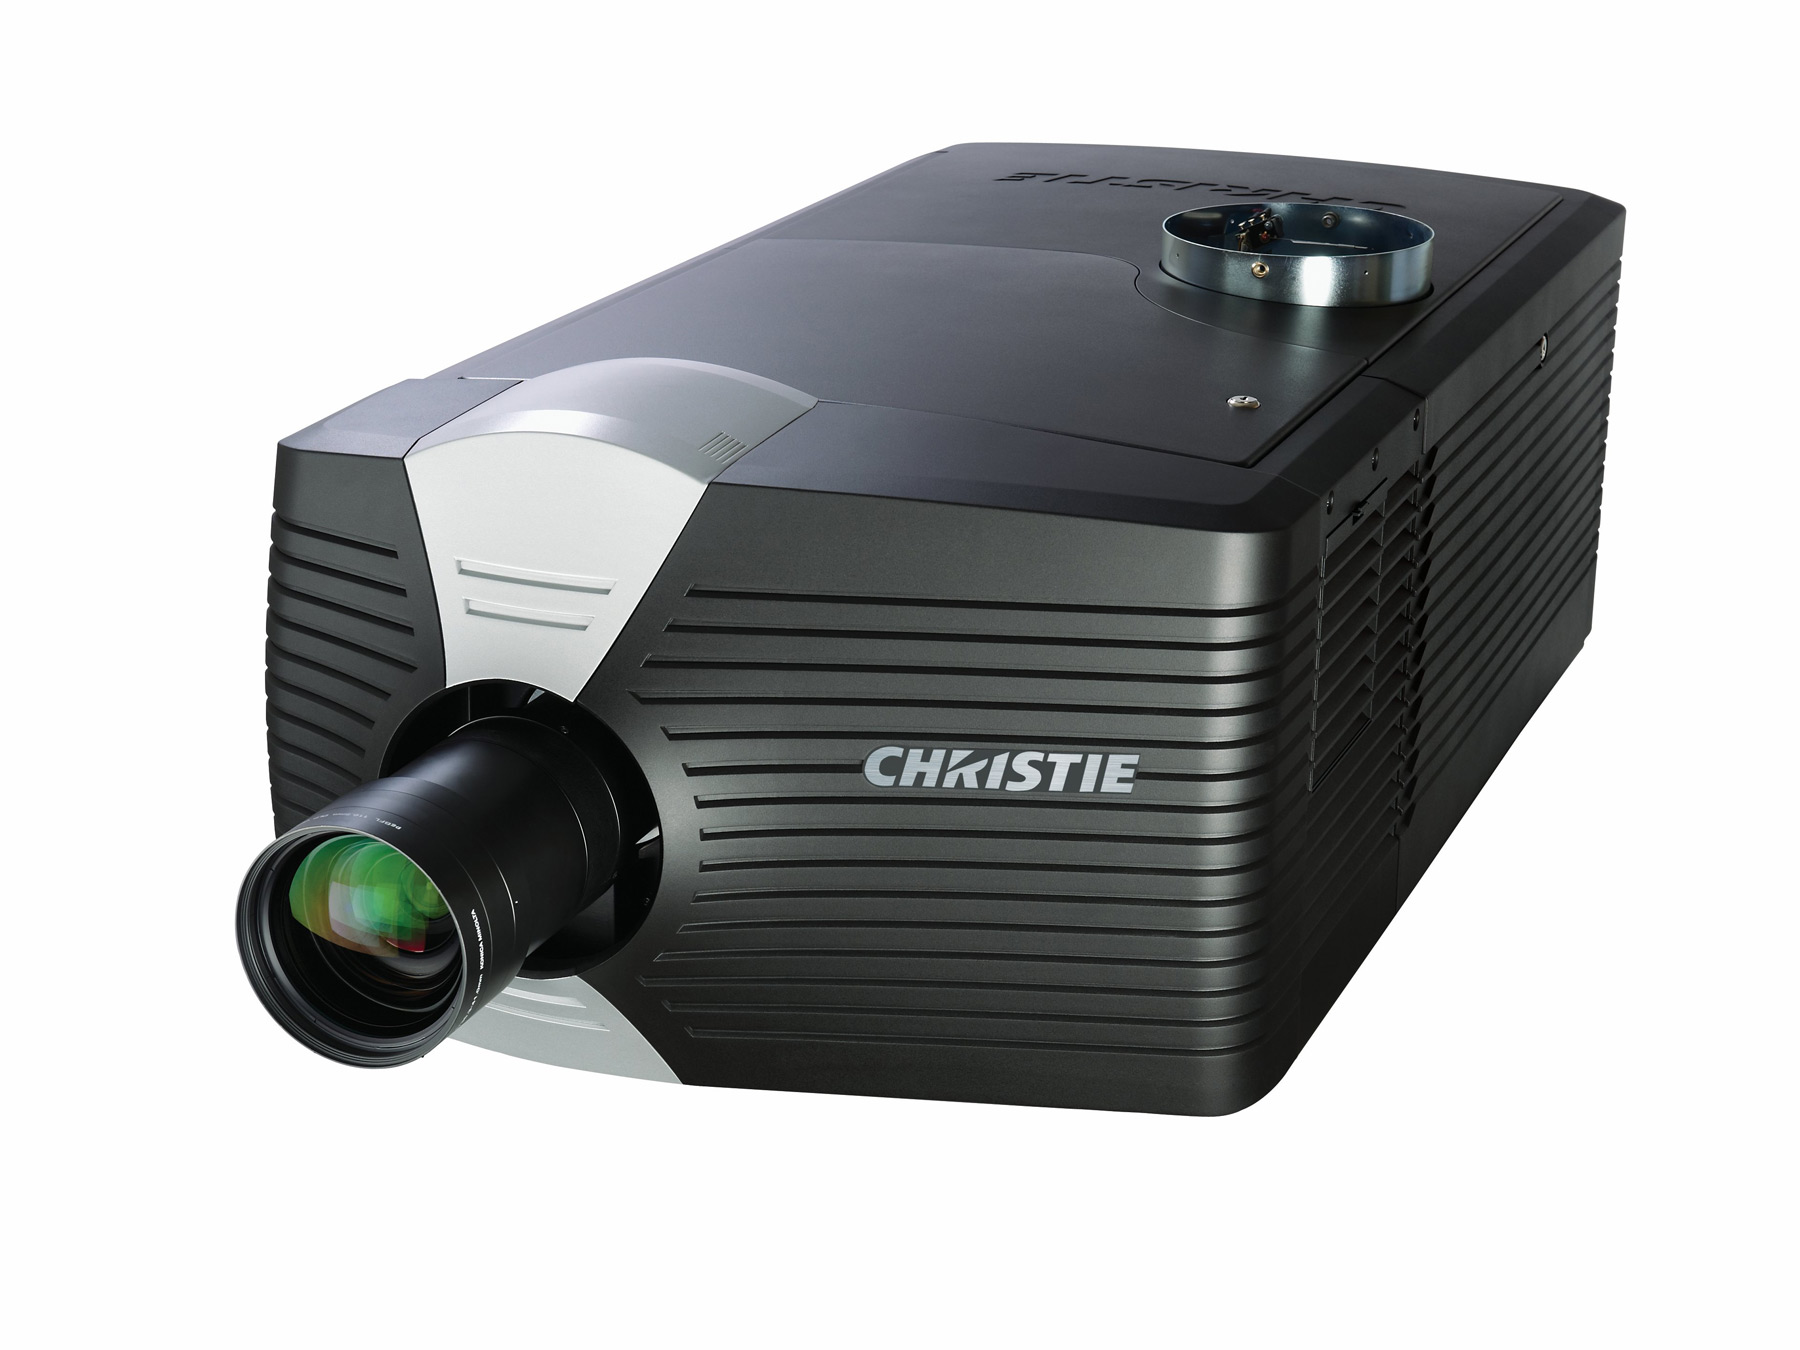 /globalassets/.catalog/products/images/christie-cp4230/gallery/digital-cinema-projector-4k-image-6.jpg